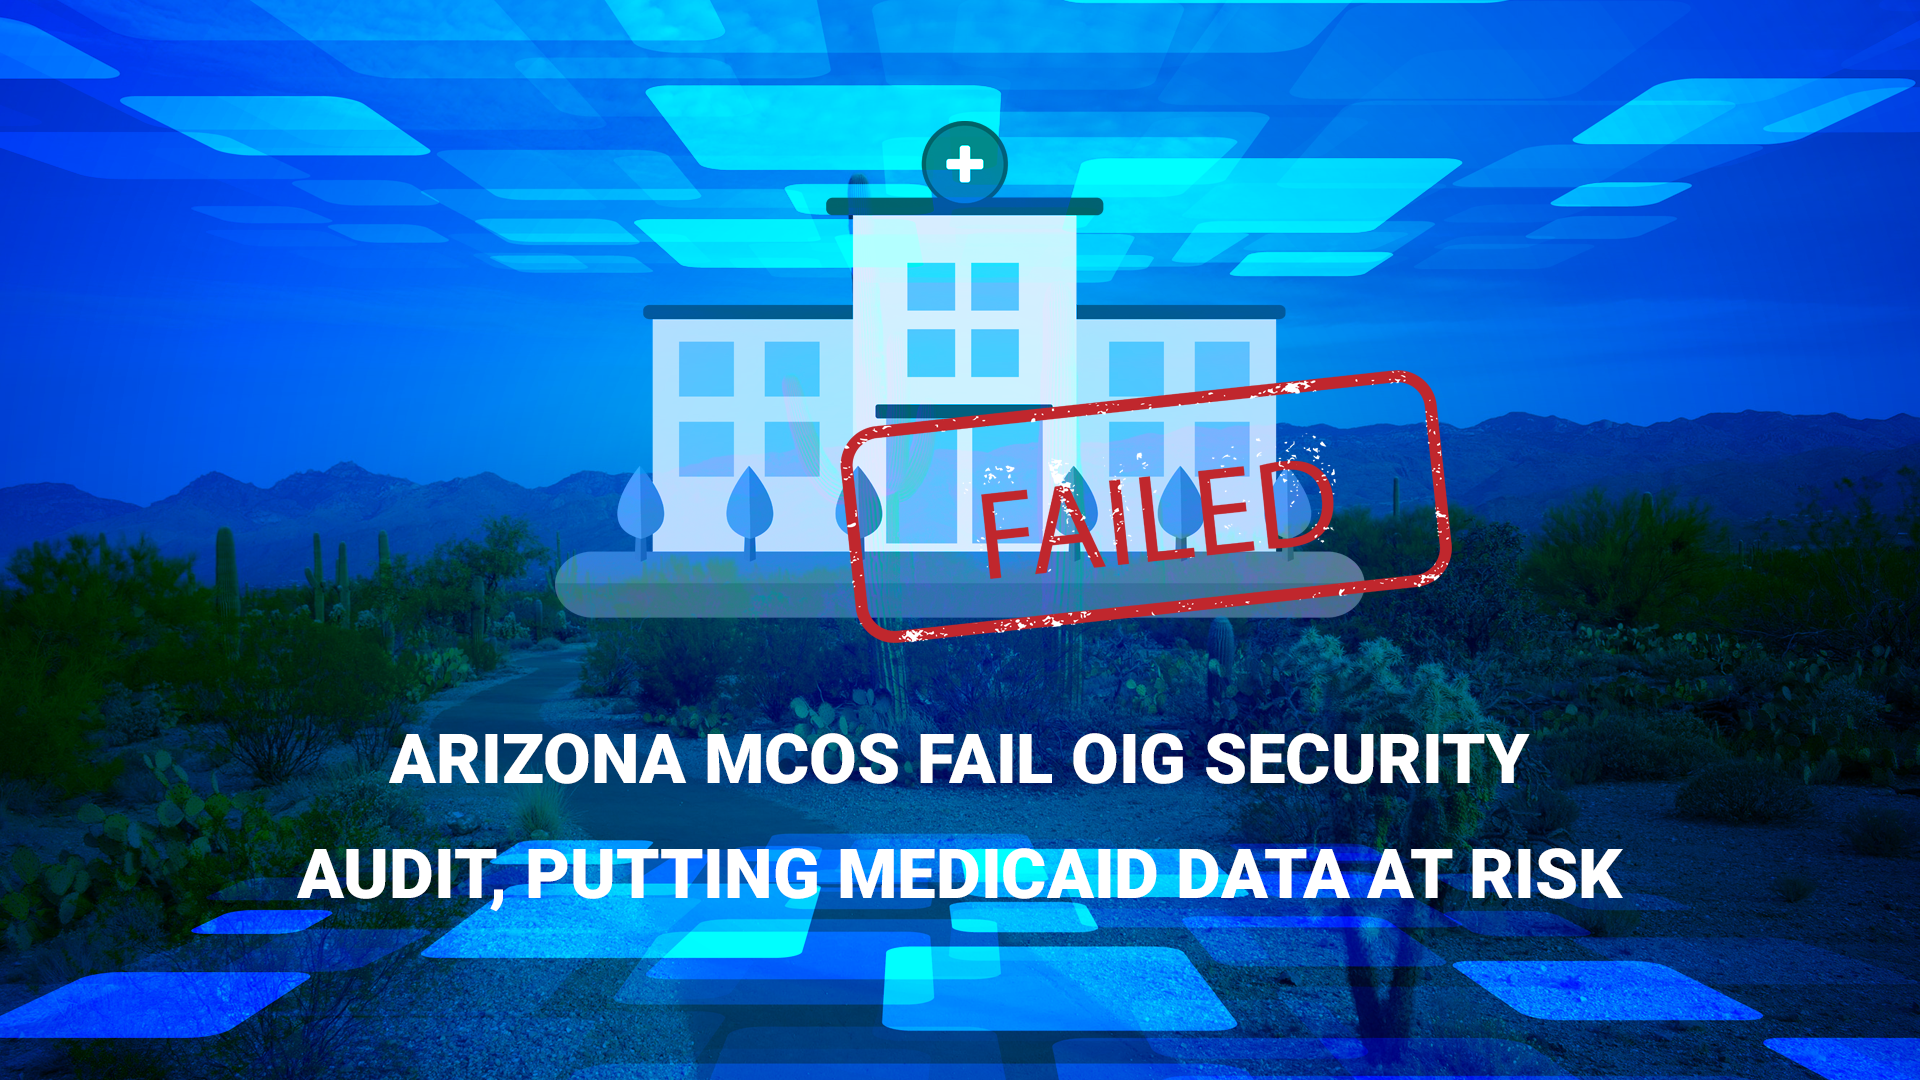 Arizona MCOs Fail OIG Security Audit, Putting Medicaid Data at Risk